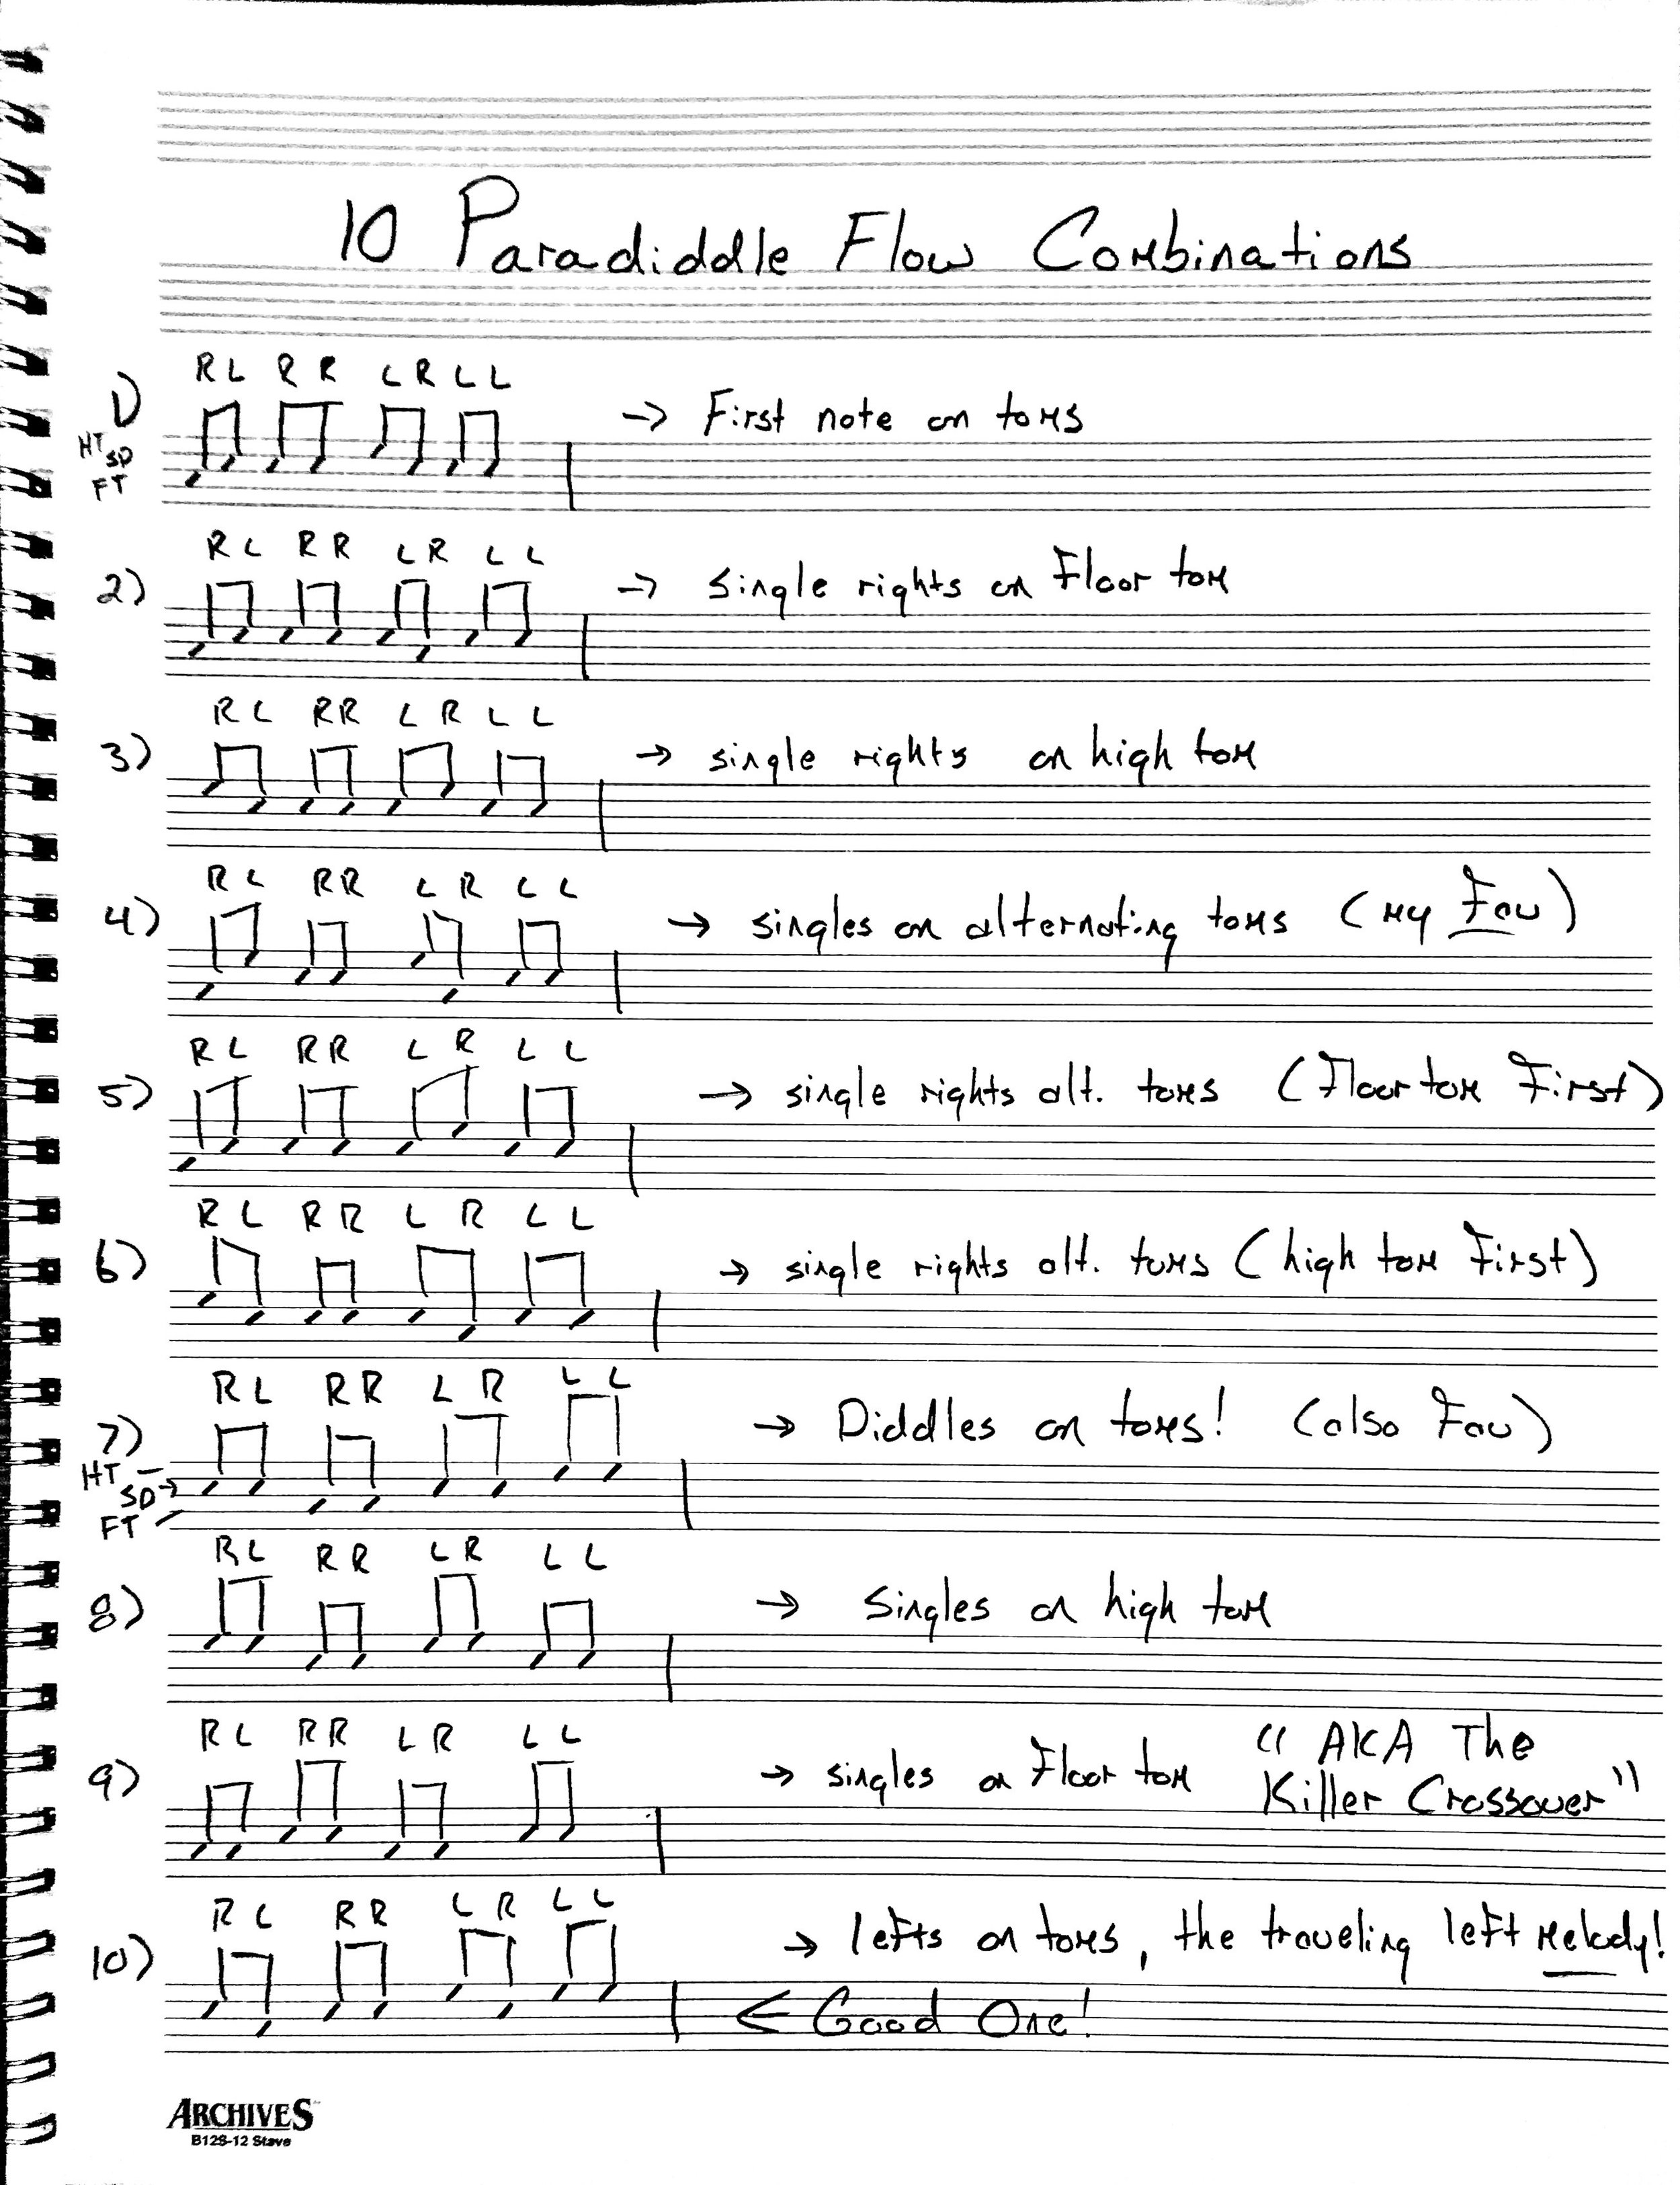 10 Paradiddle Flow Combos.JPG